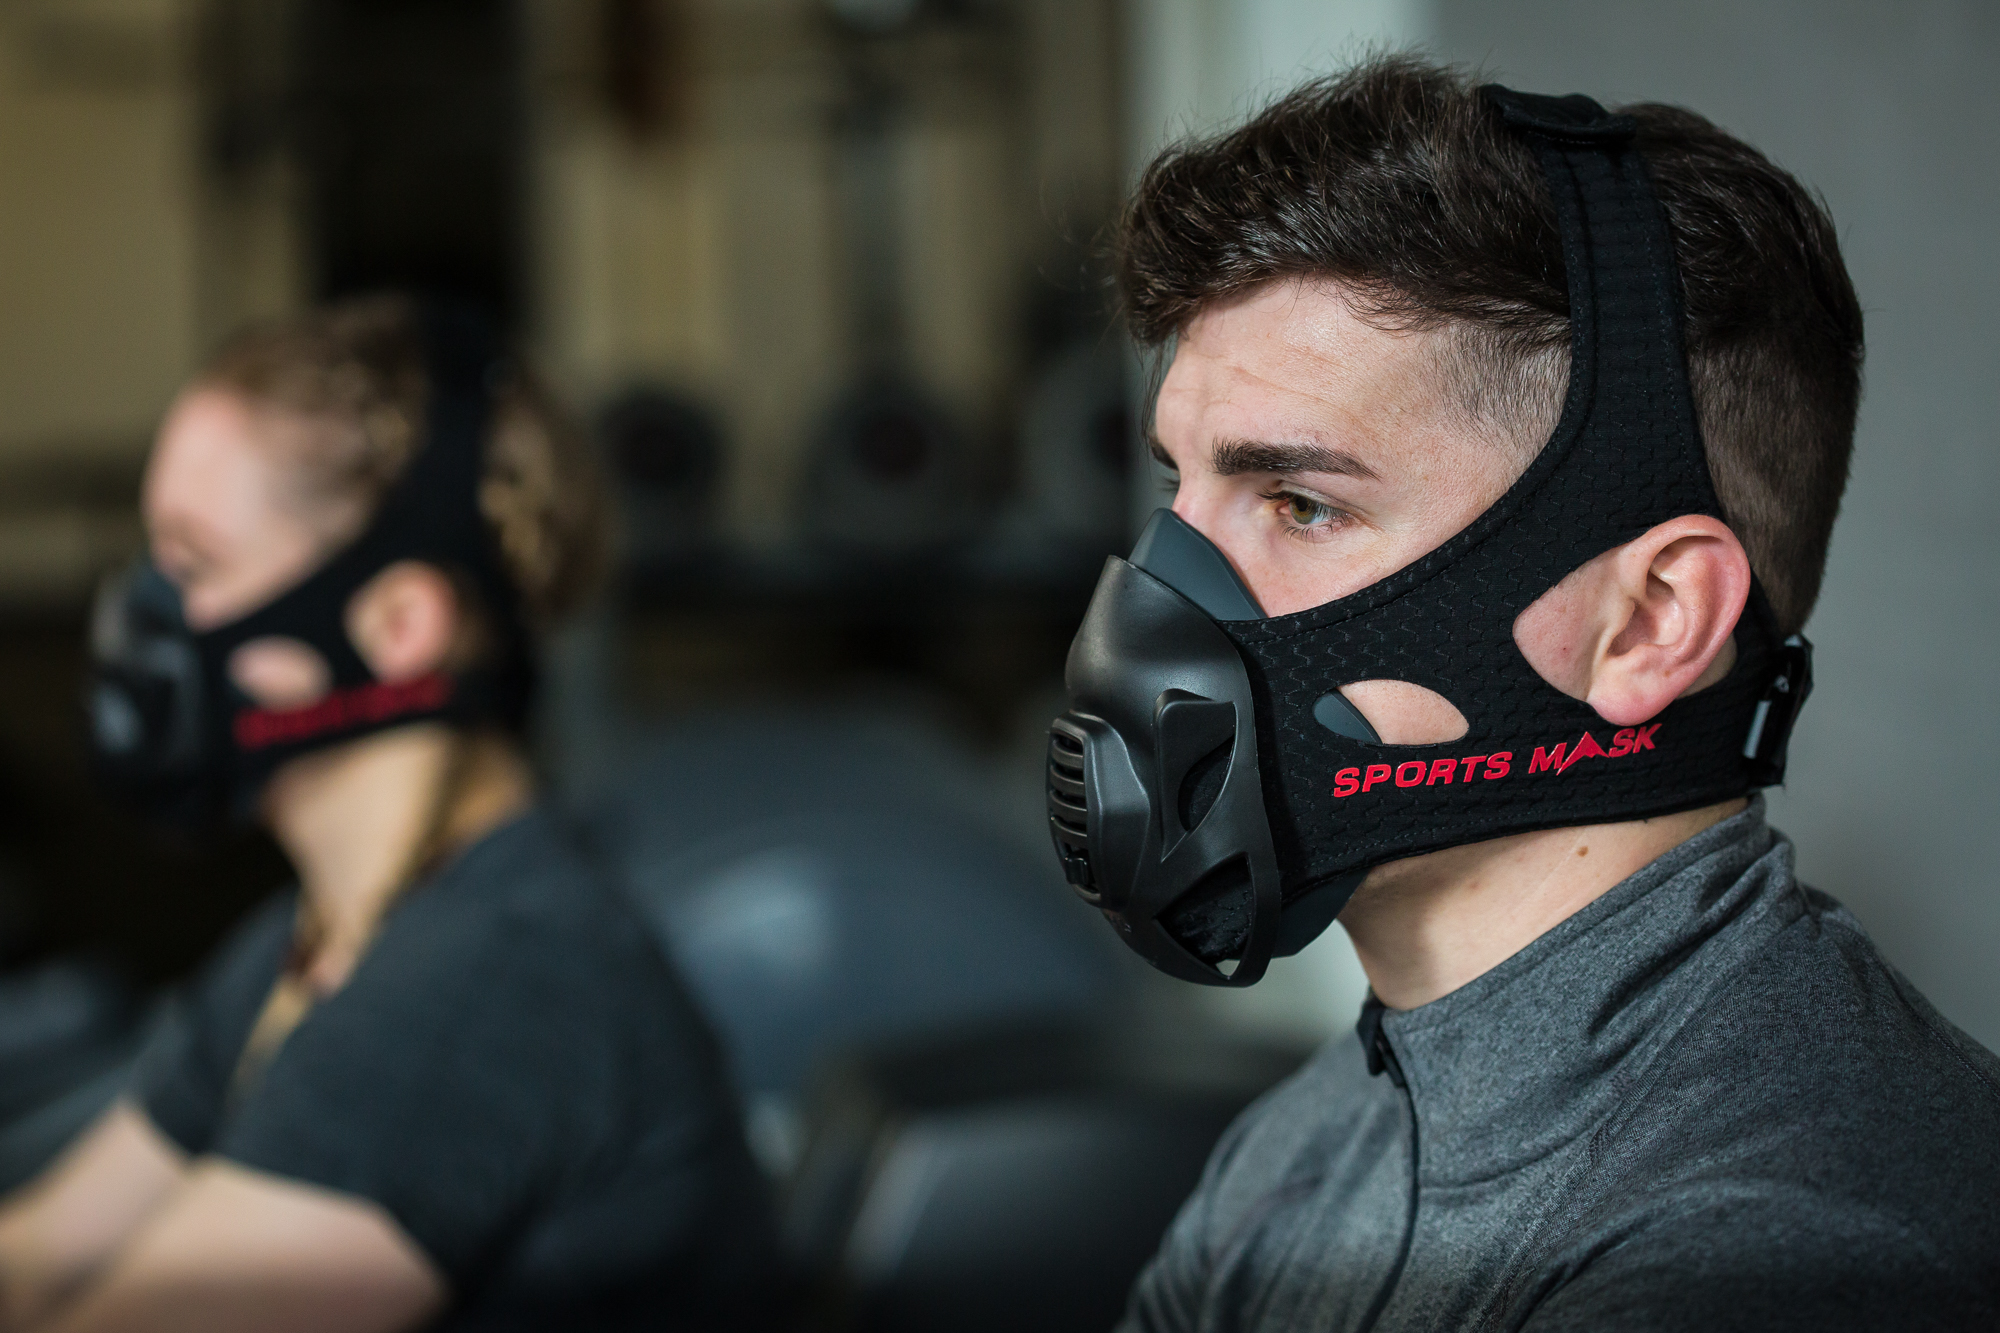 Athletes wear sports masks to improve their breathing